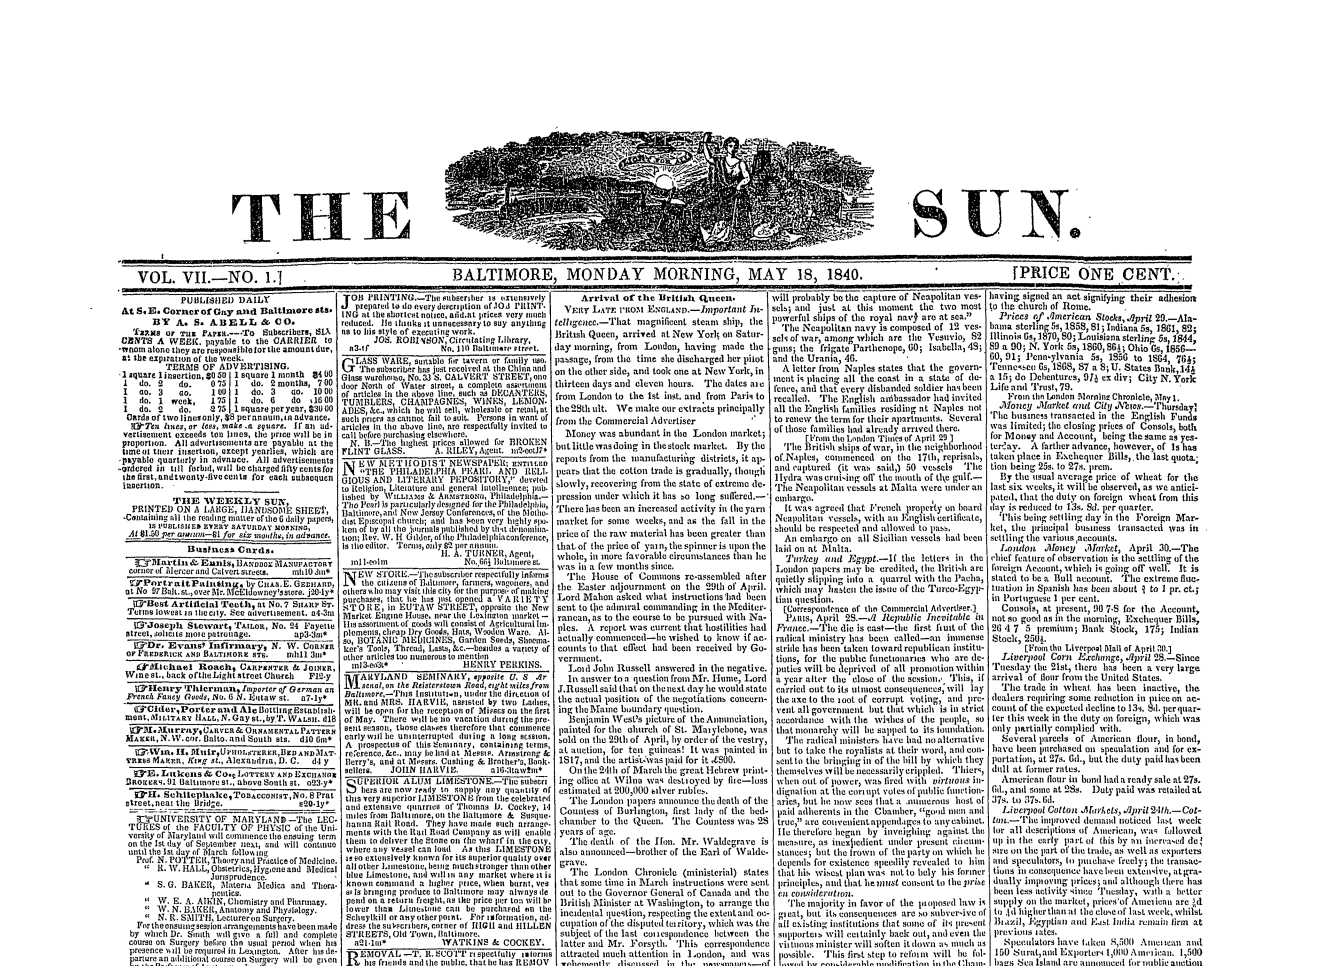 Light For All: The Baltimore Sun at 180